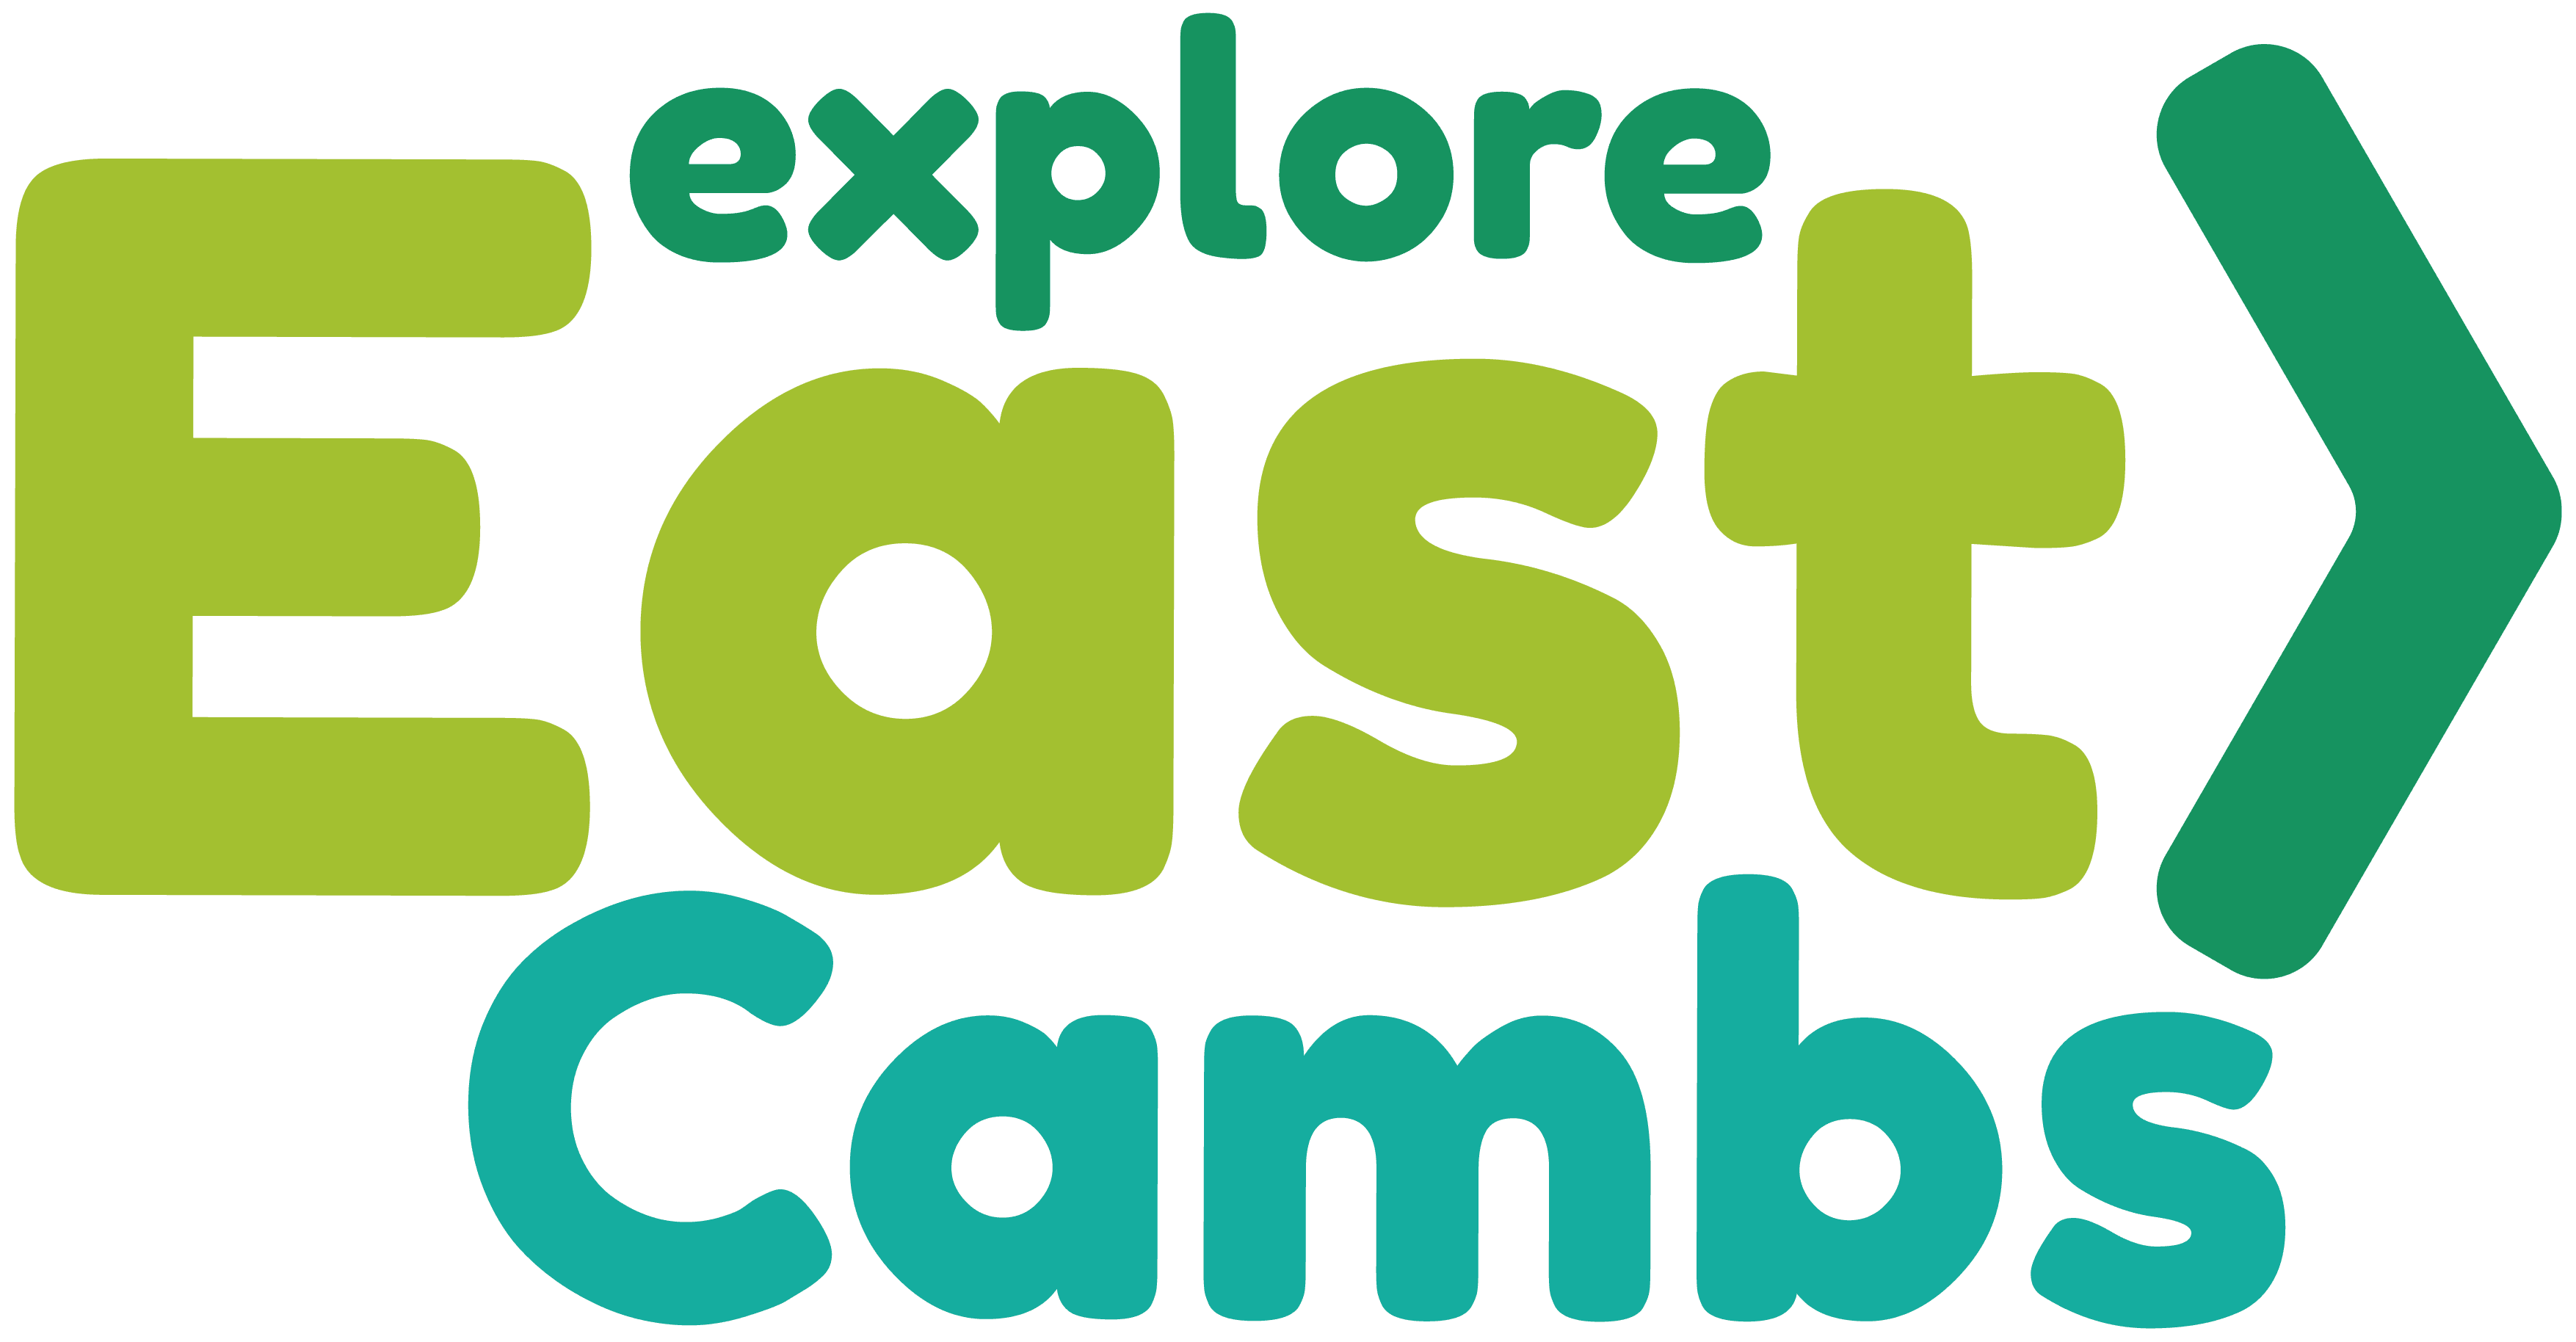 explore east cambs logo